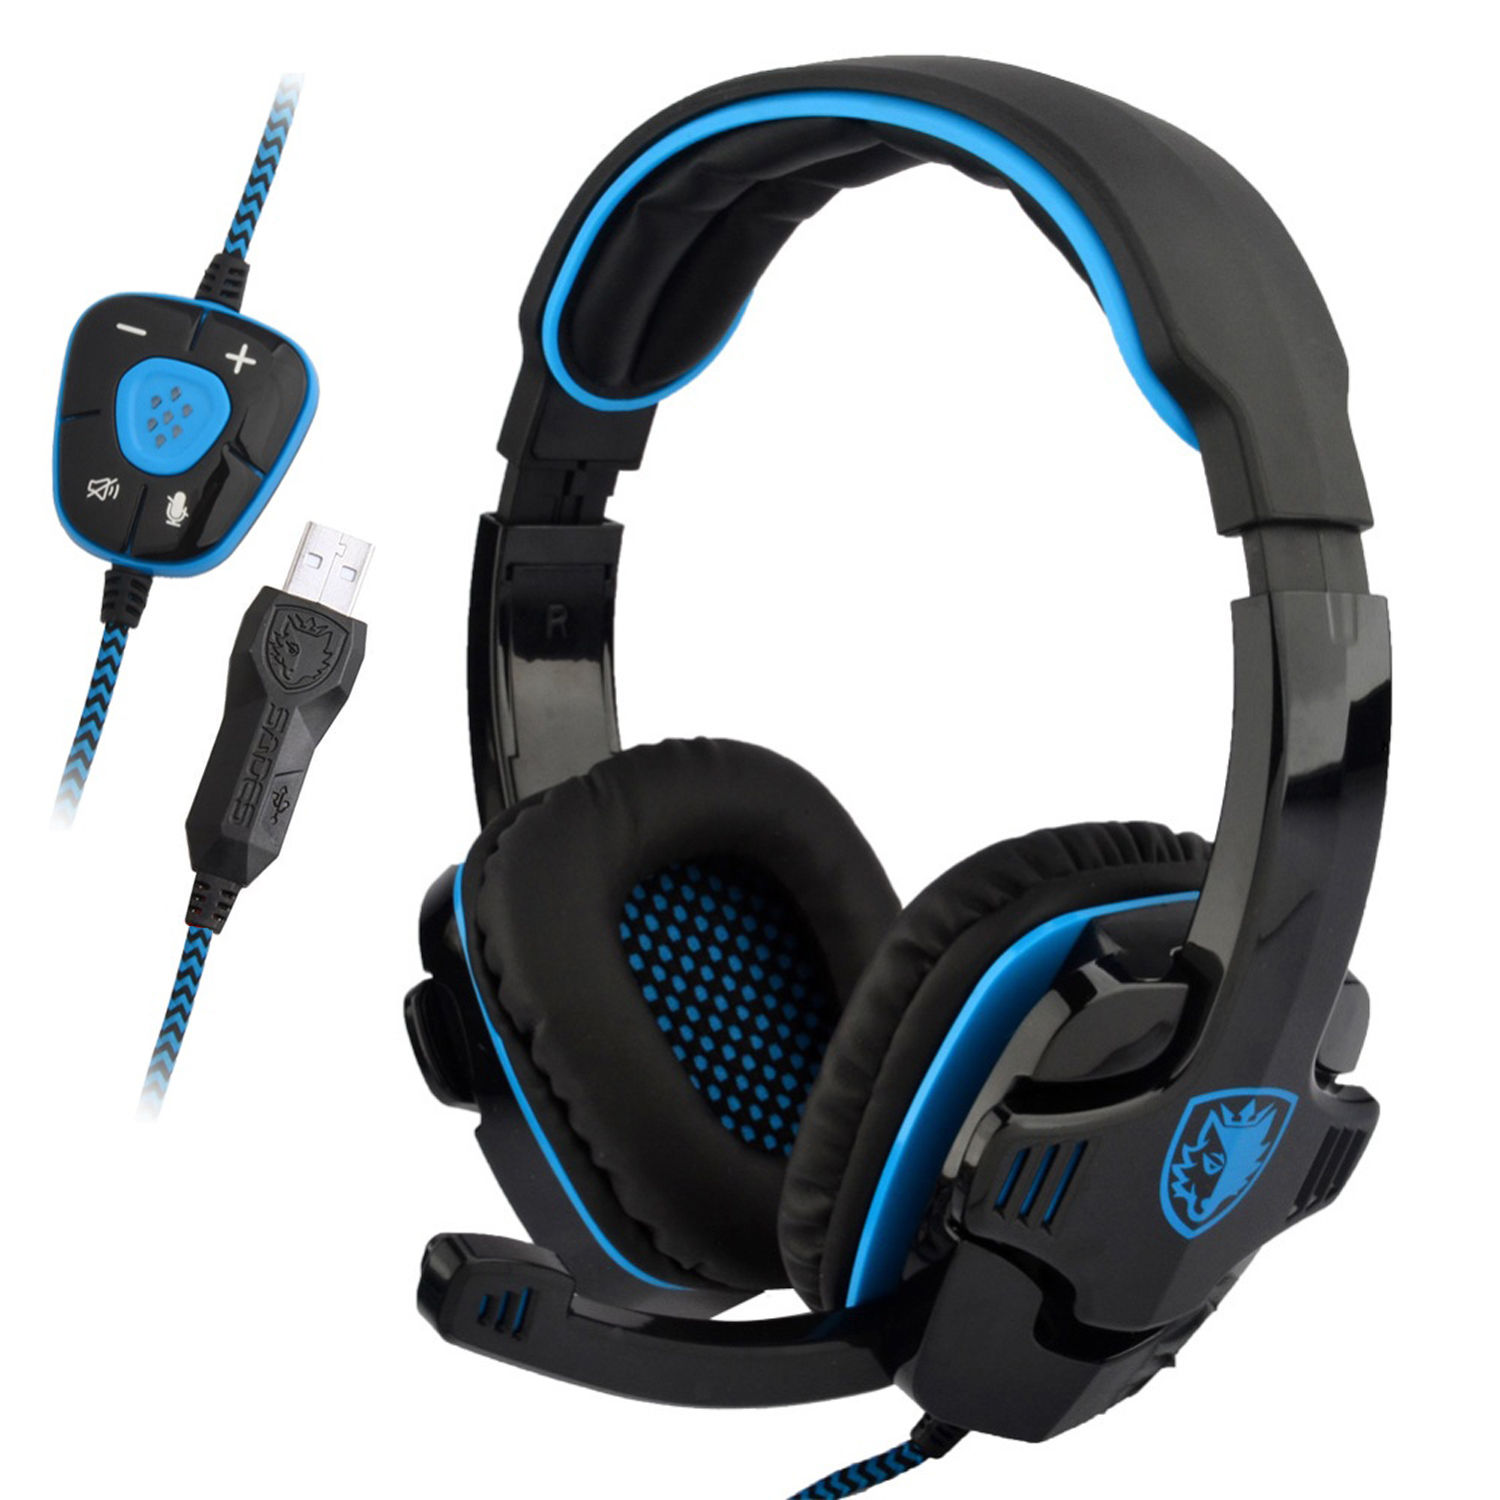 Sades SA-901 Stereo 7.1 Surround Gaming Headset USB Headband W/Mic for PC Laptop | eBay